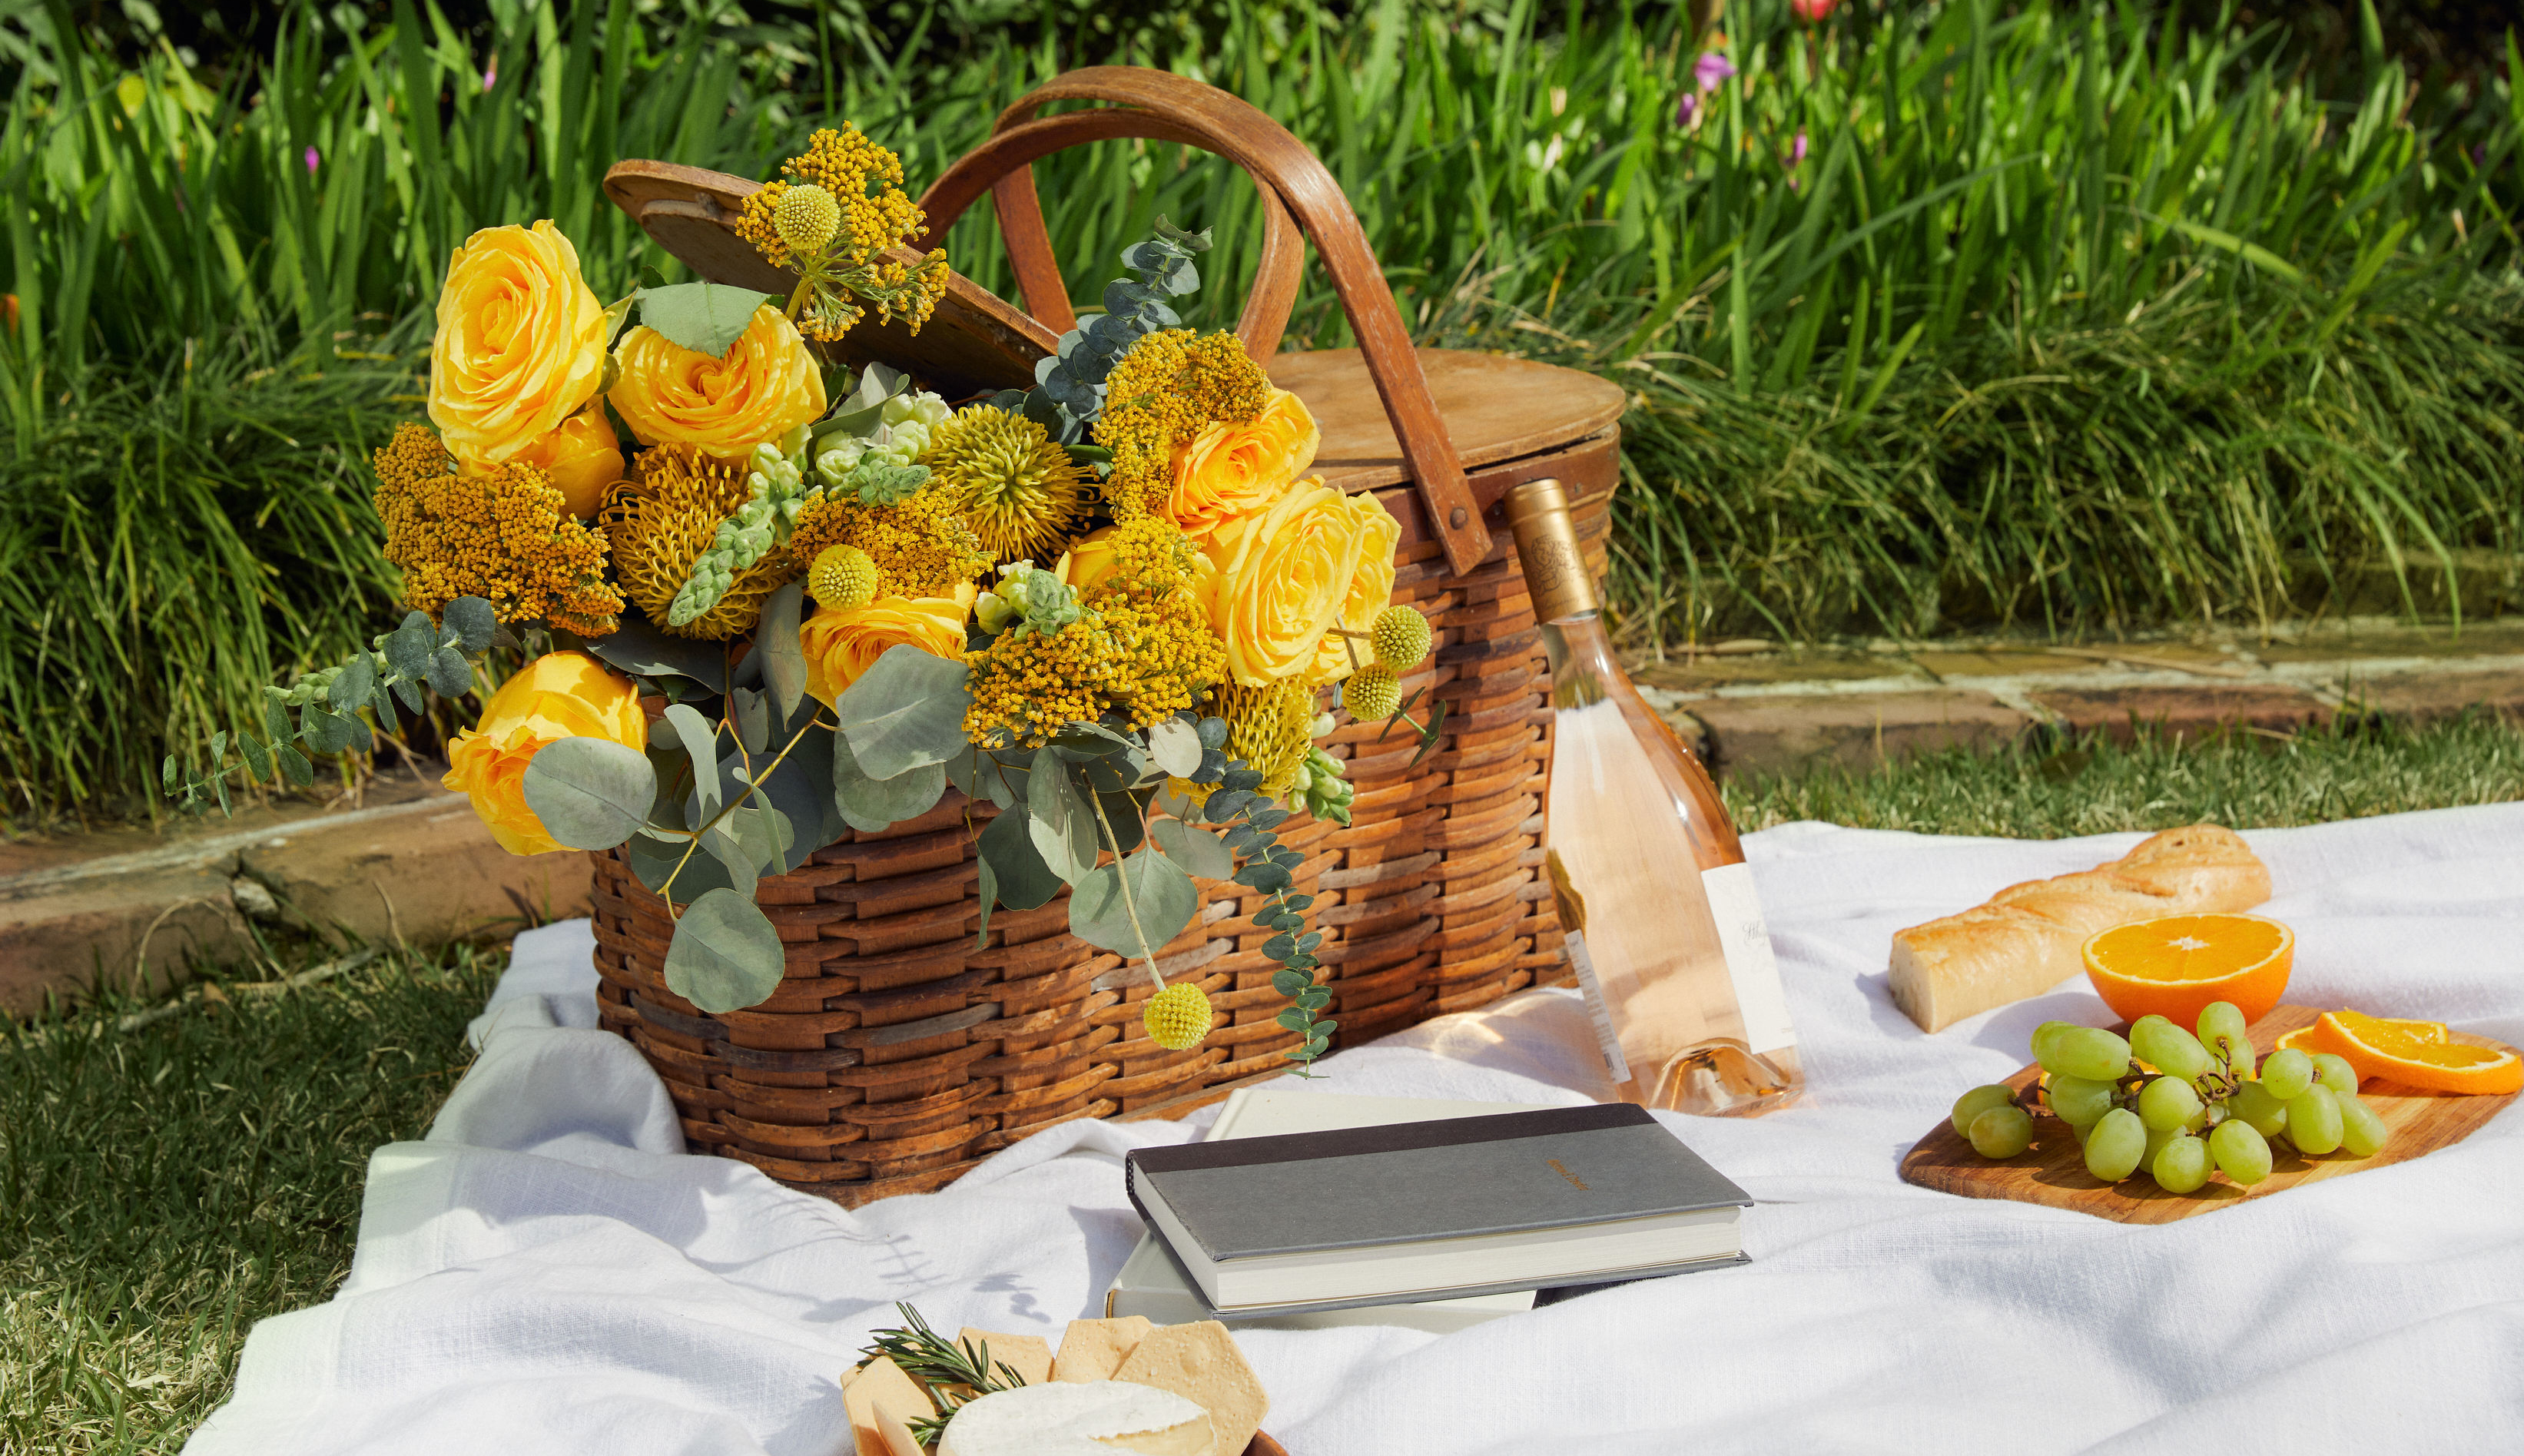 Bouquet of yellow flowers in a picnic basket